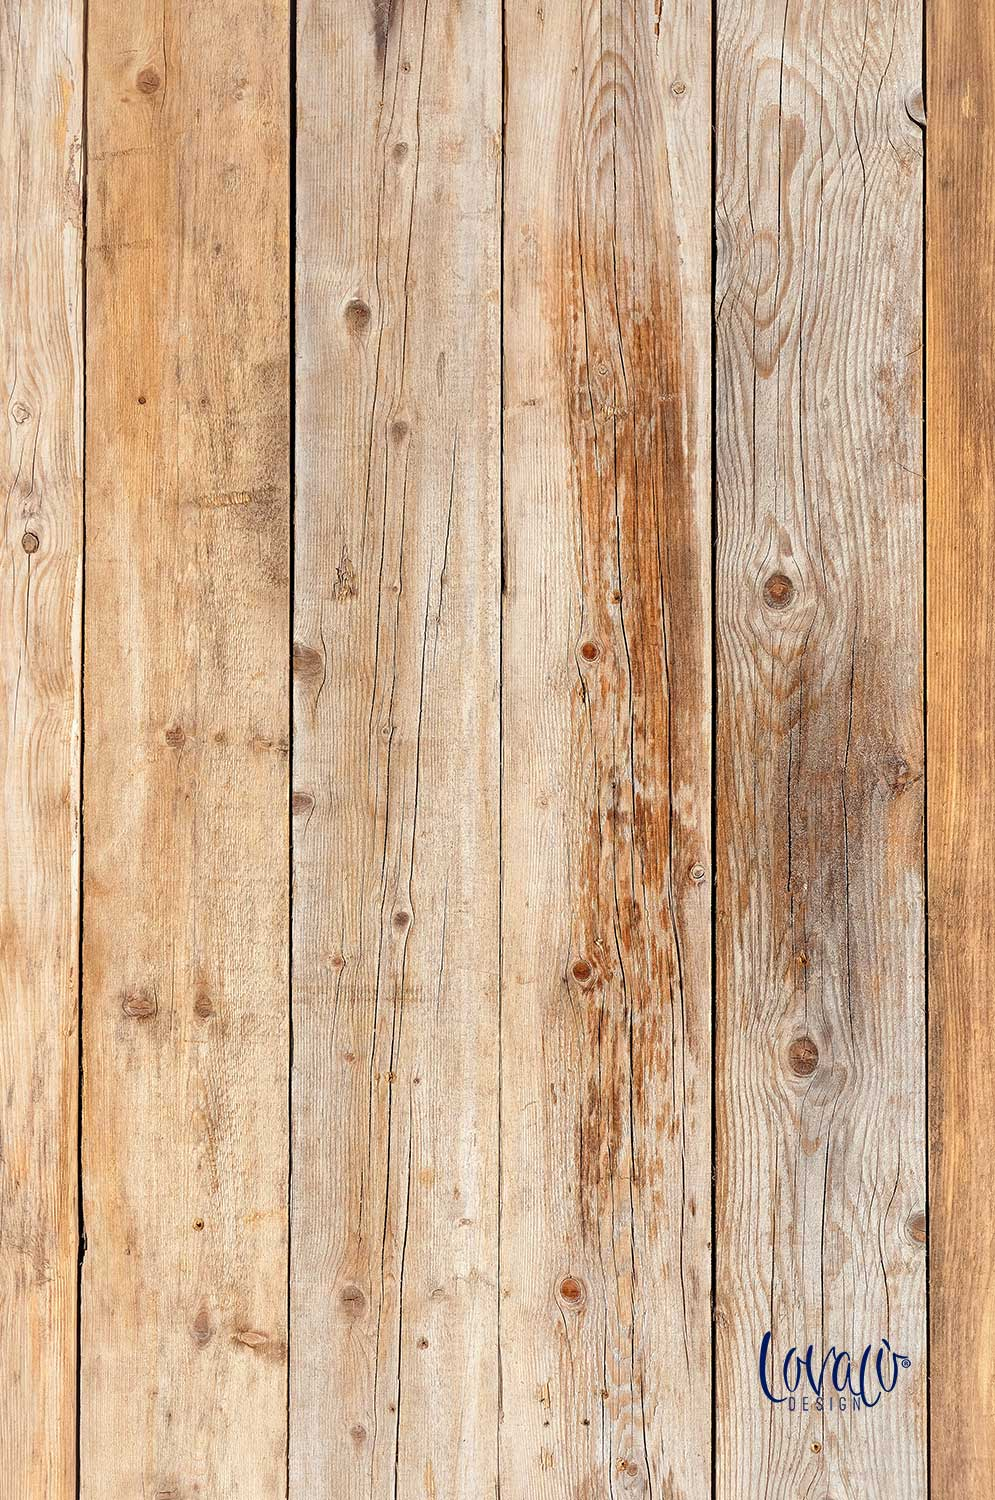 Shabby wood photography backdrop - Lov 1003